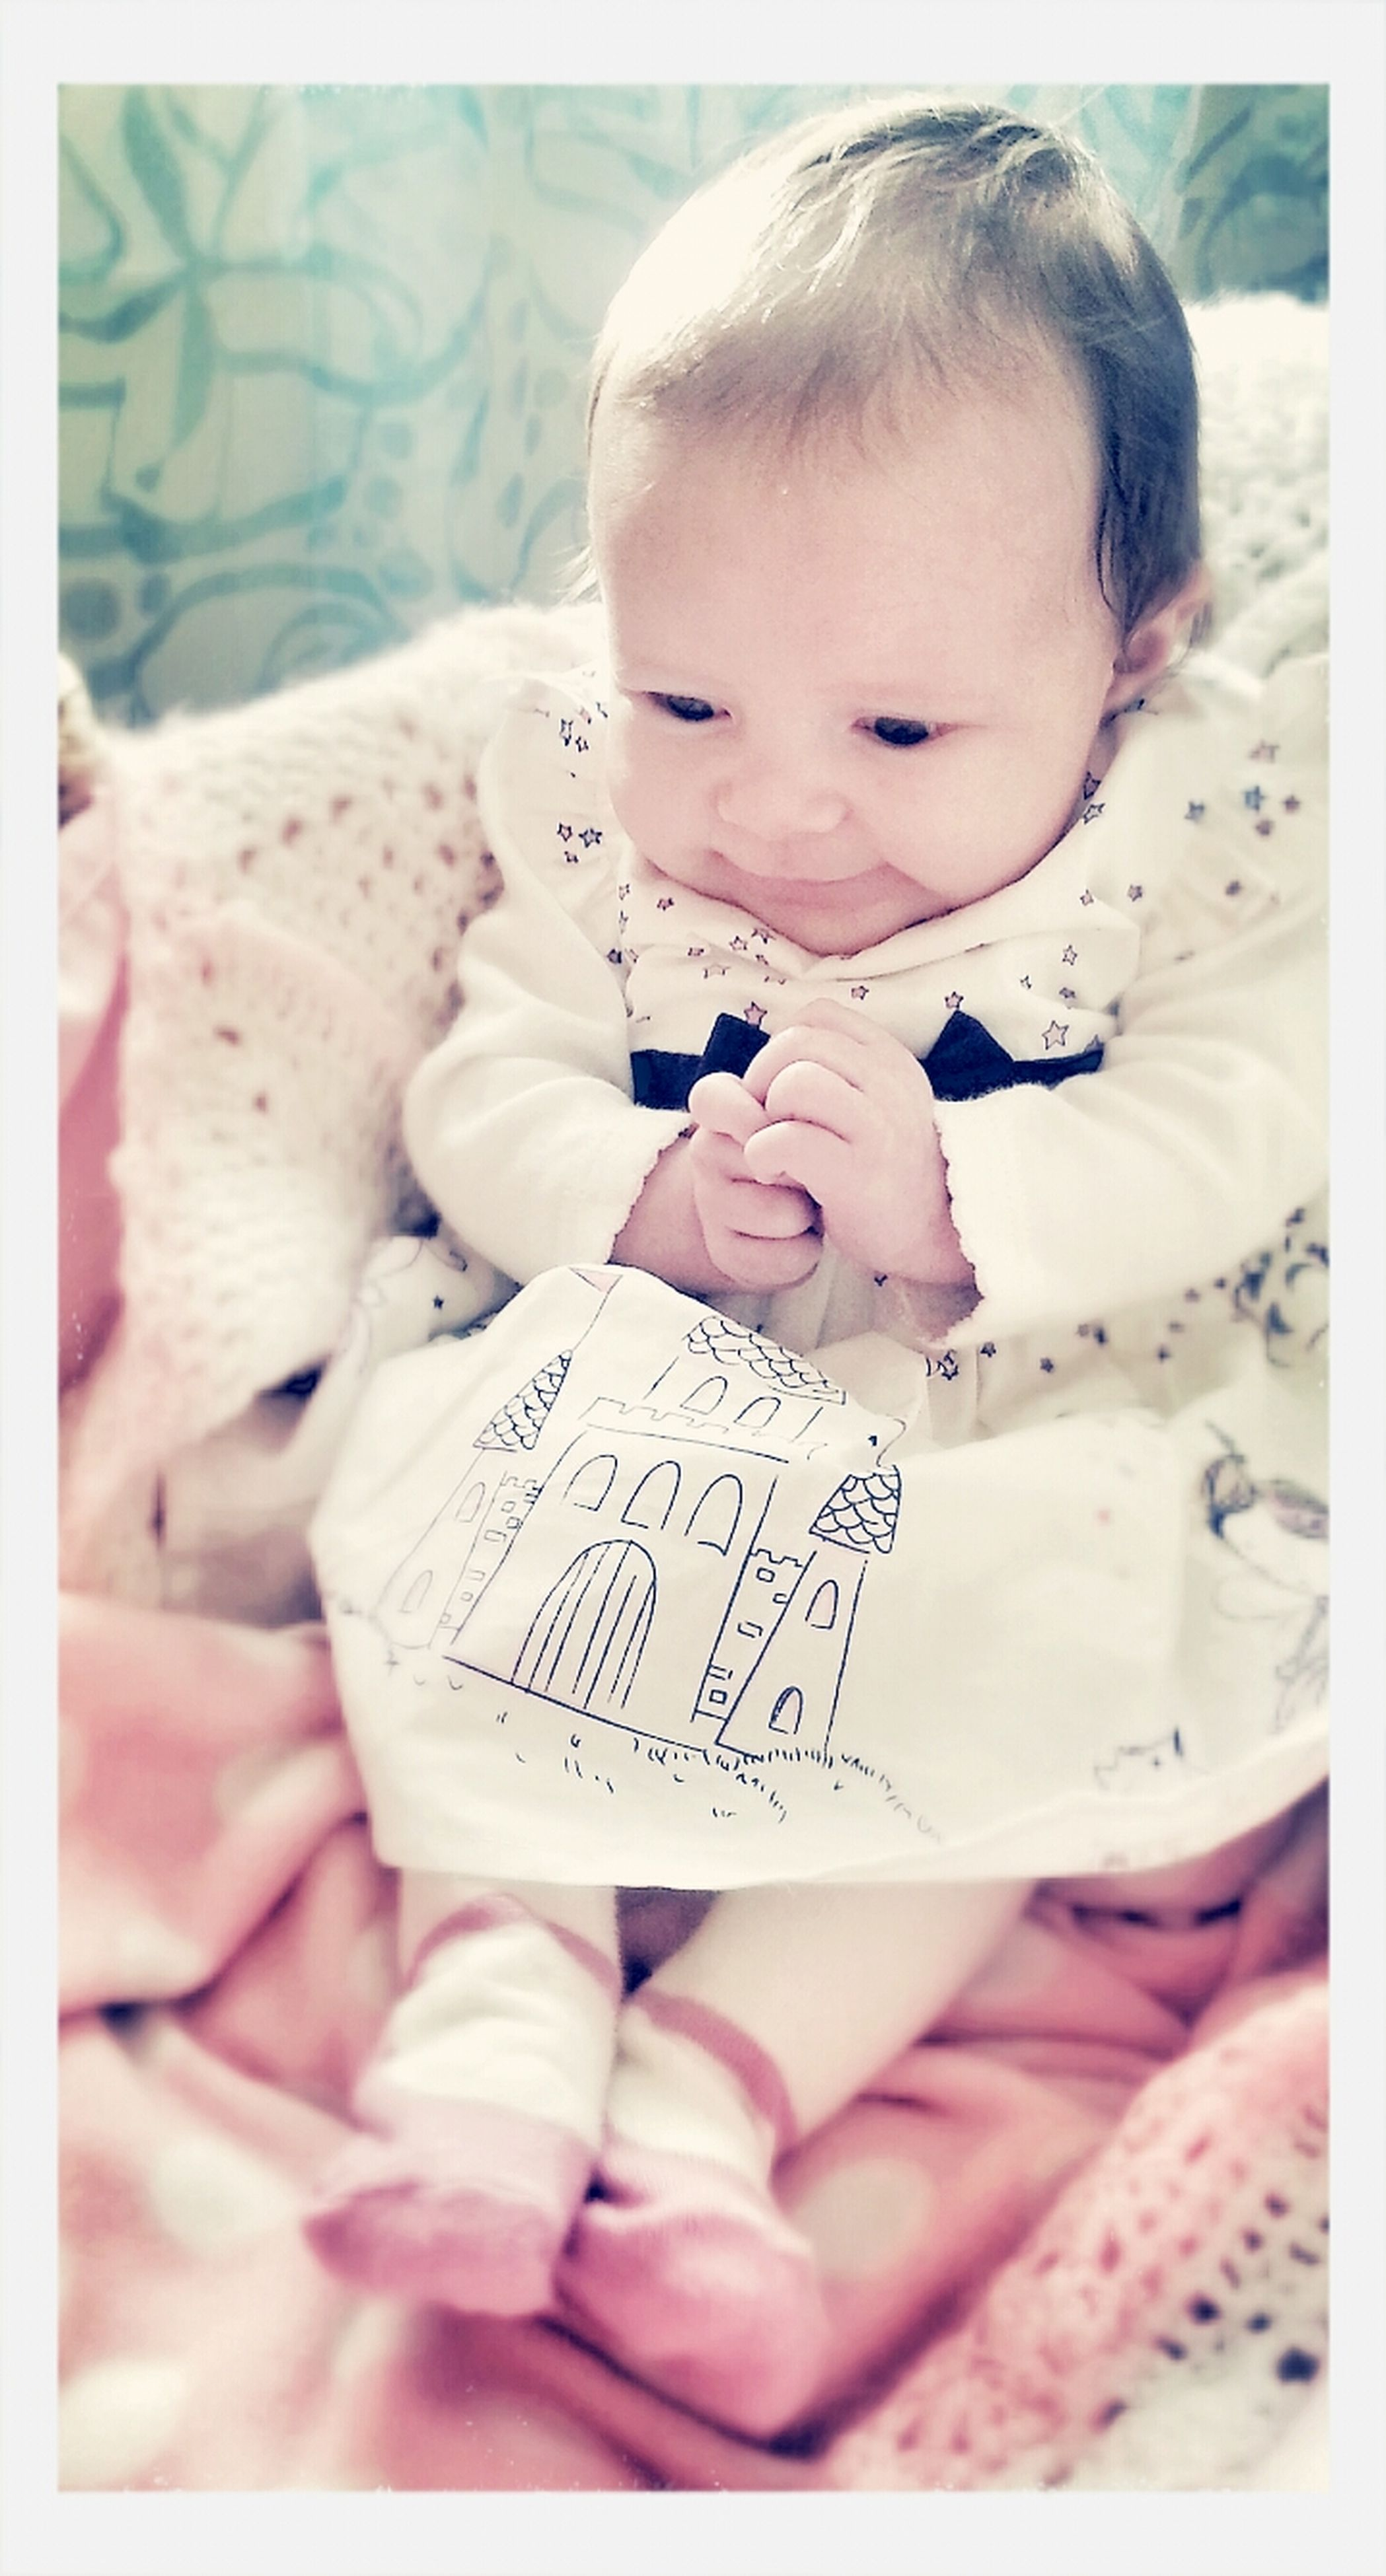 indoors, childhood, transfer print, text, communication, lifestyles, auto post production filter, innocence, holding, book, person, baby, bed, leisure activity, elementary age, cute, babyhood, toddler